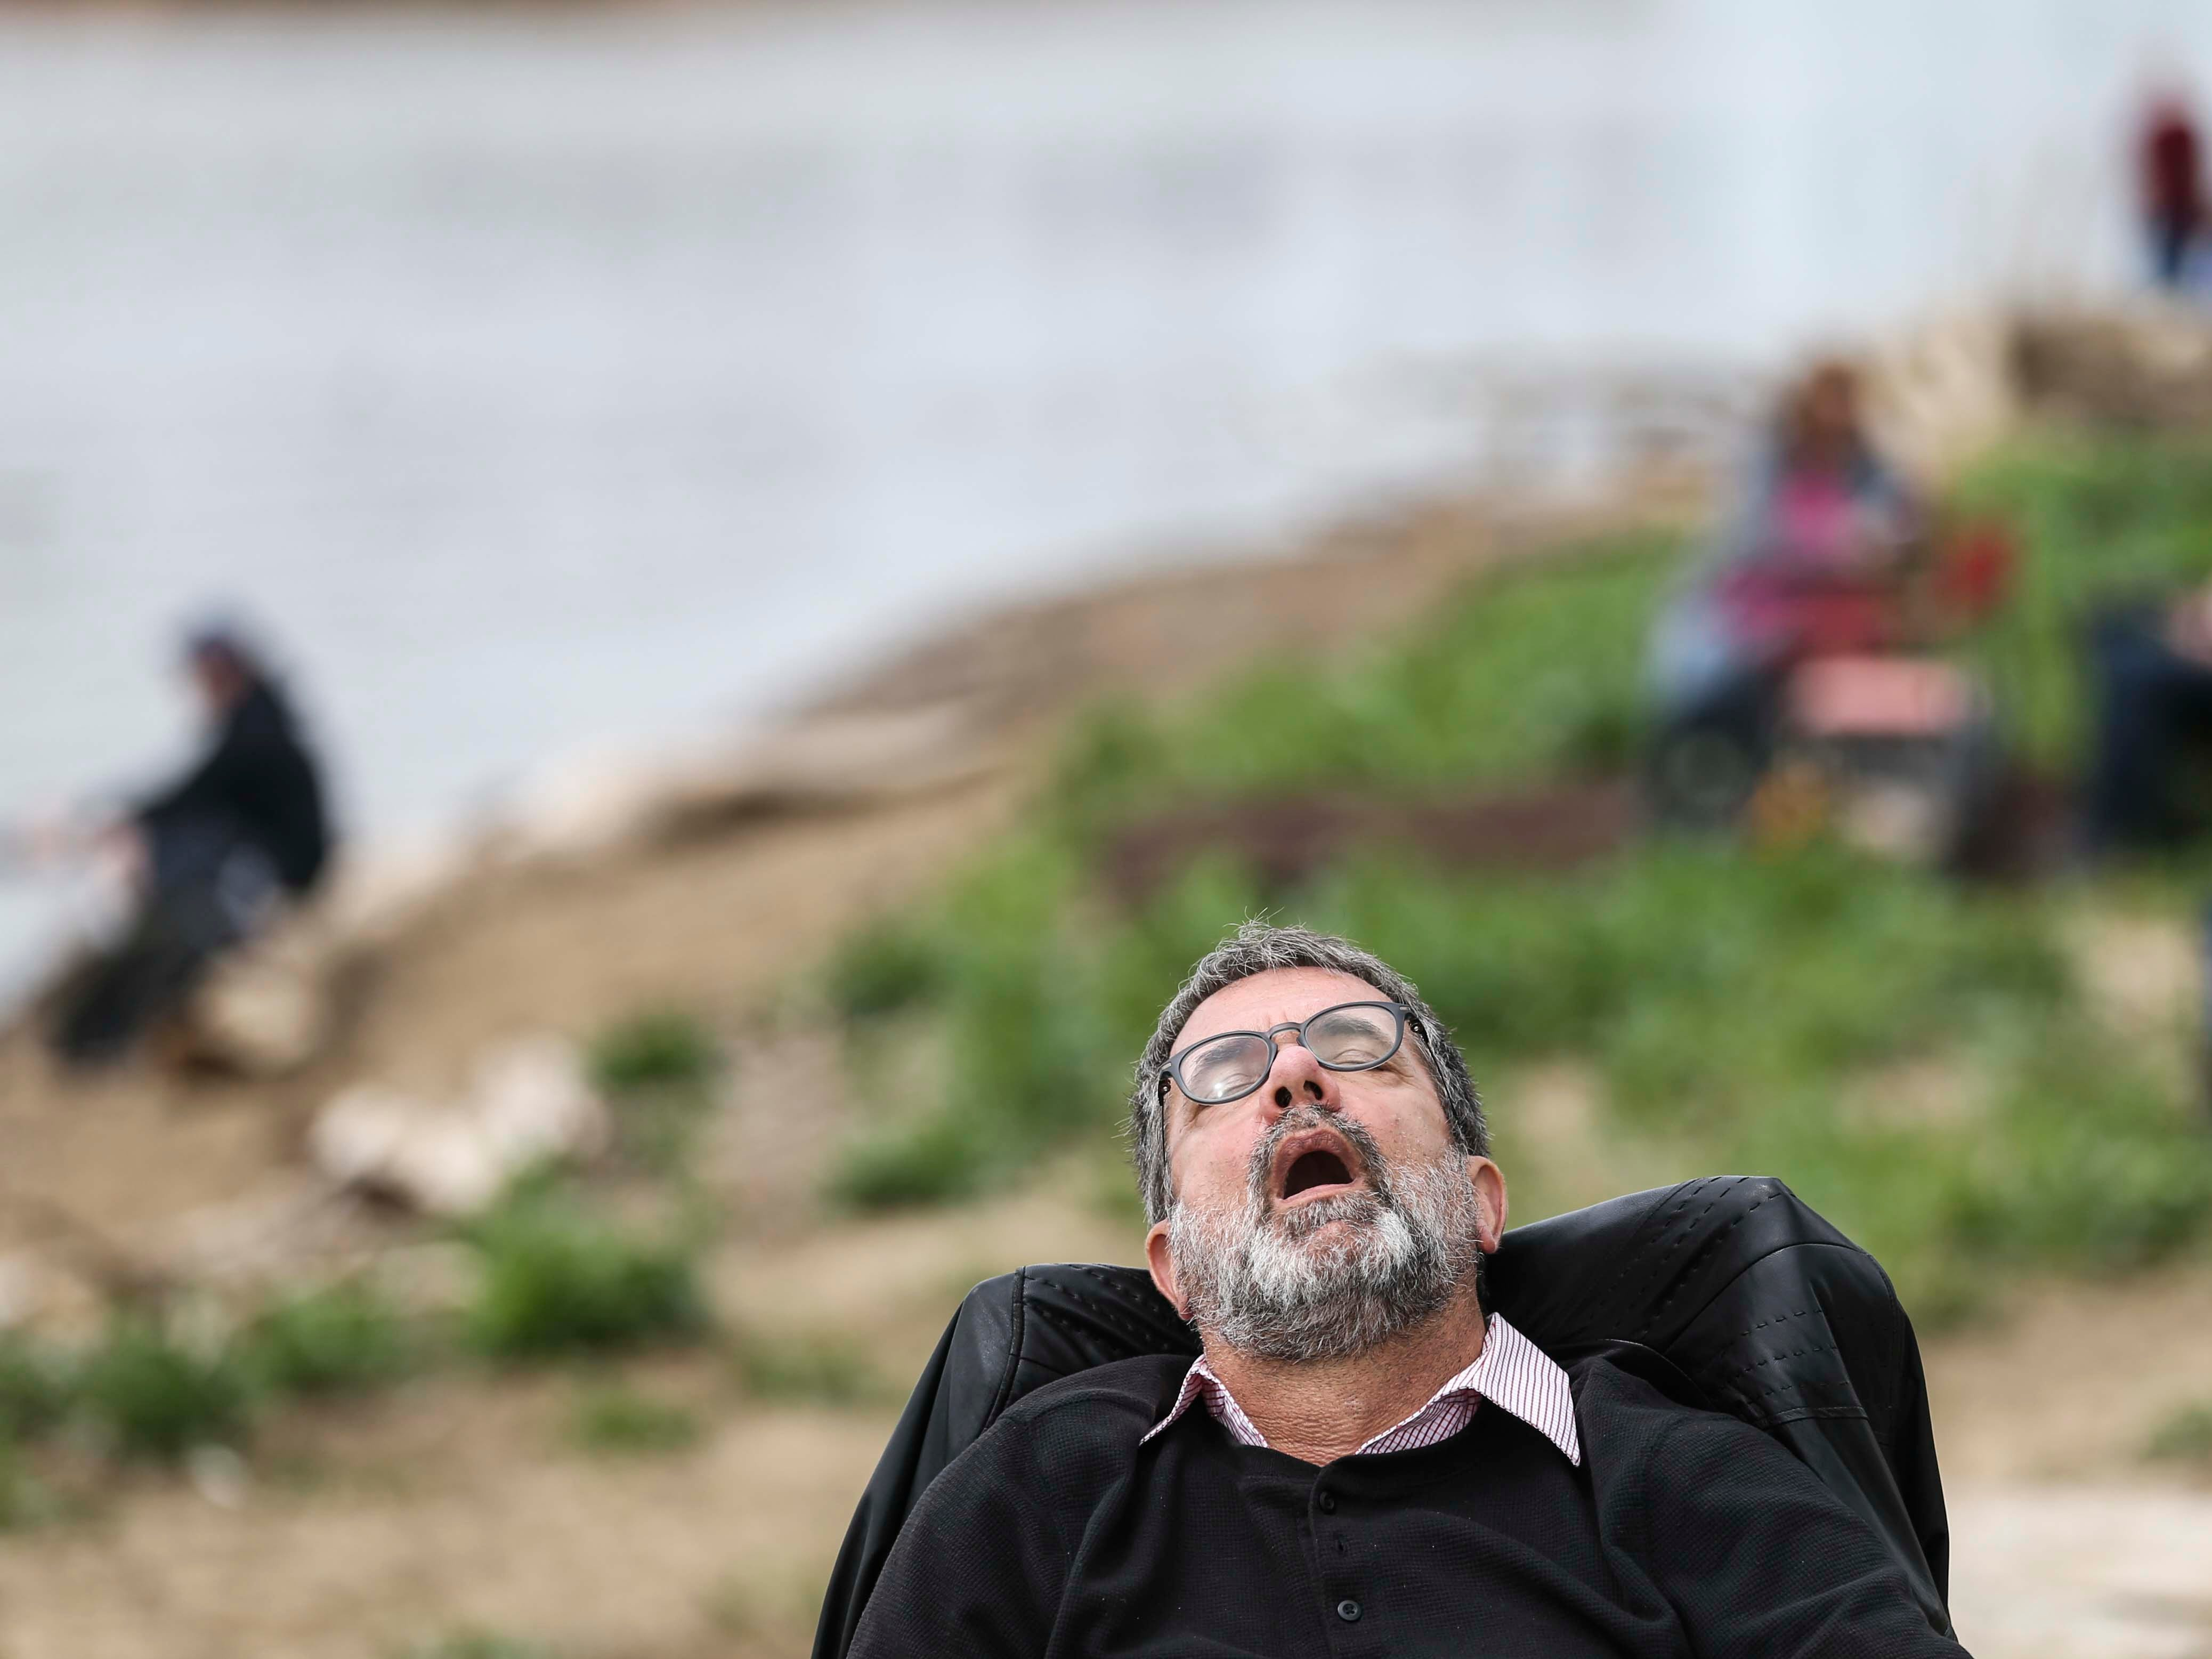 Roland Döring of Germany catches a nap before the start of Thunder Over Louisville from the Indiana riverfront. April 13, 2019